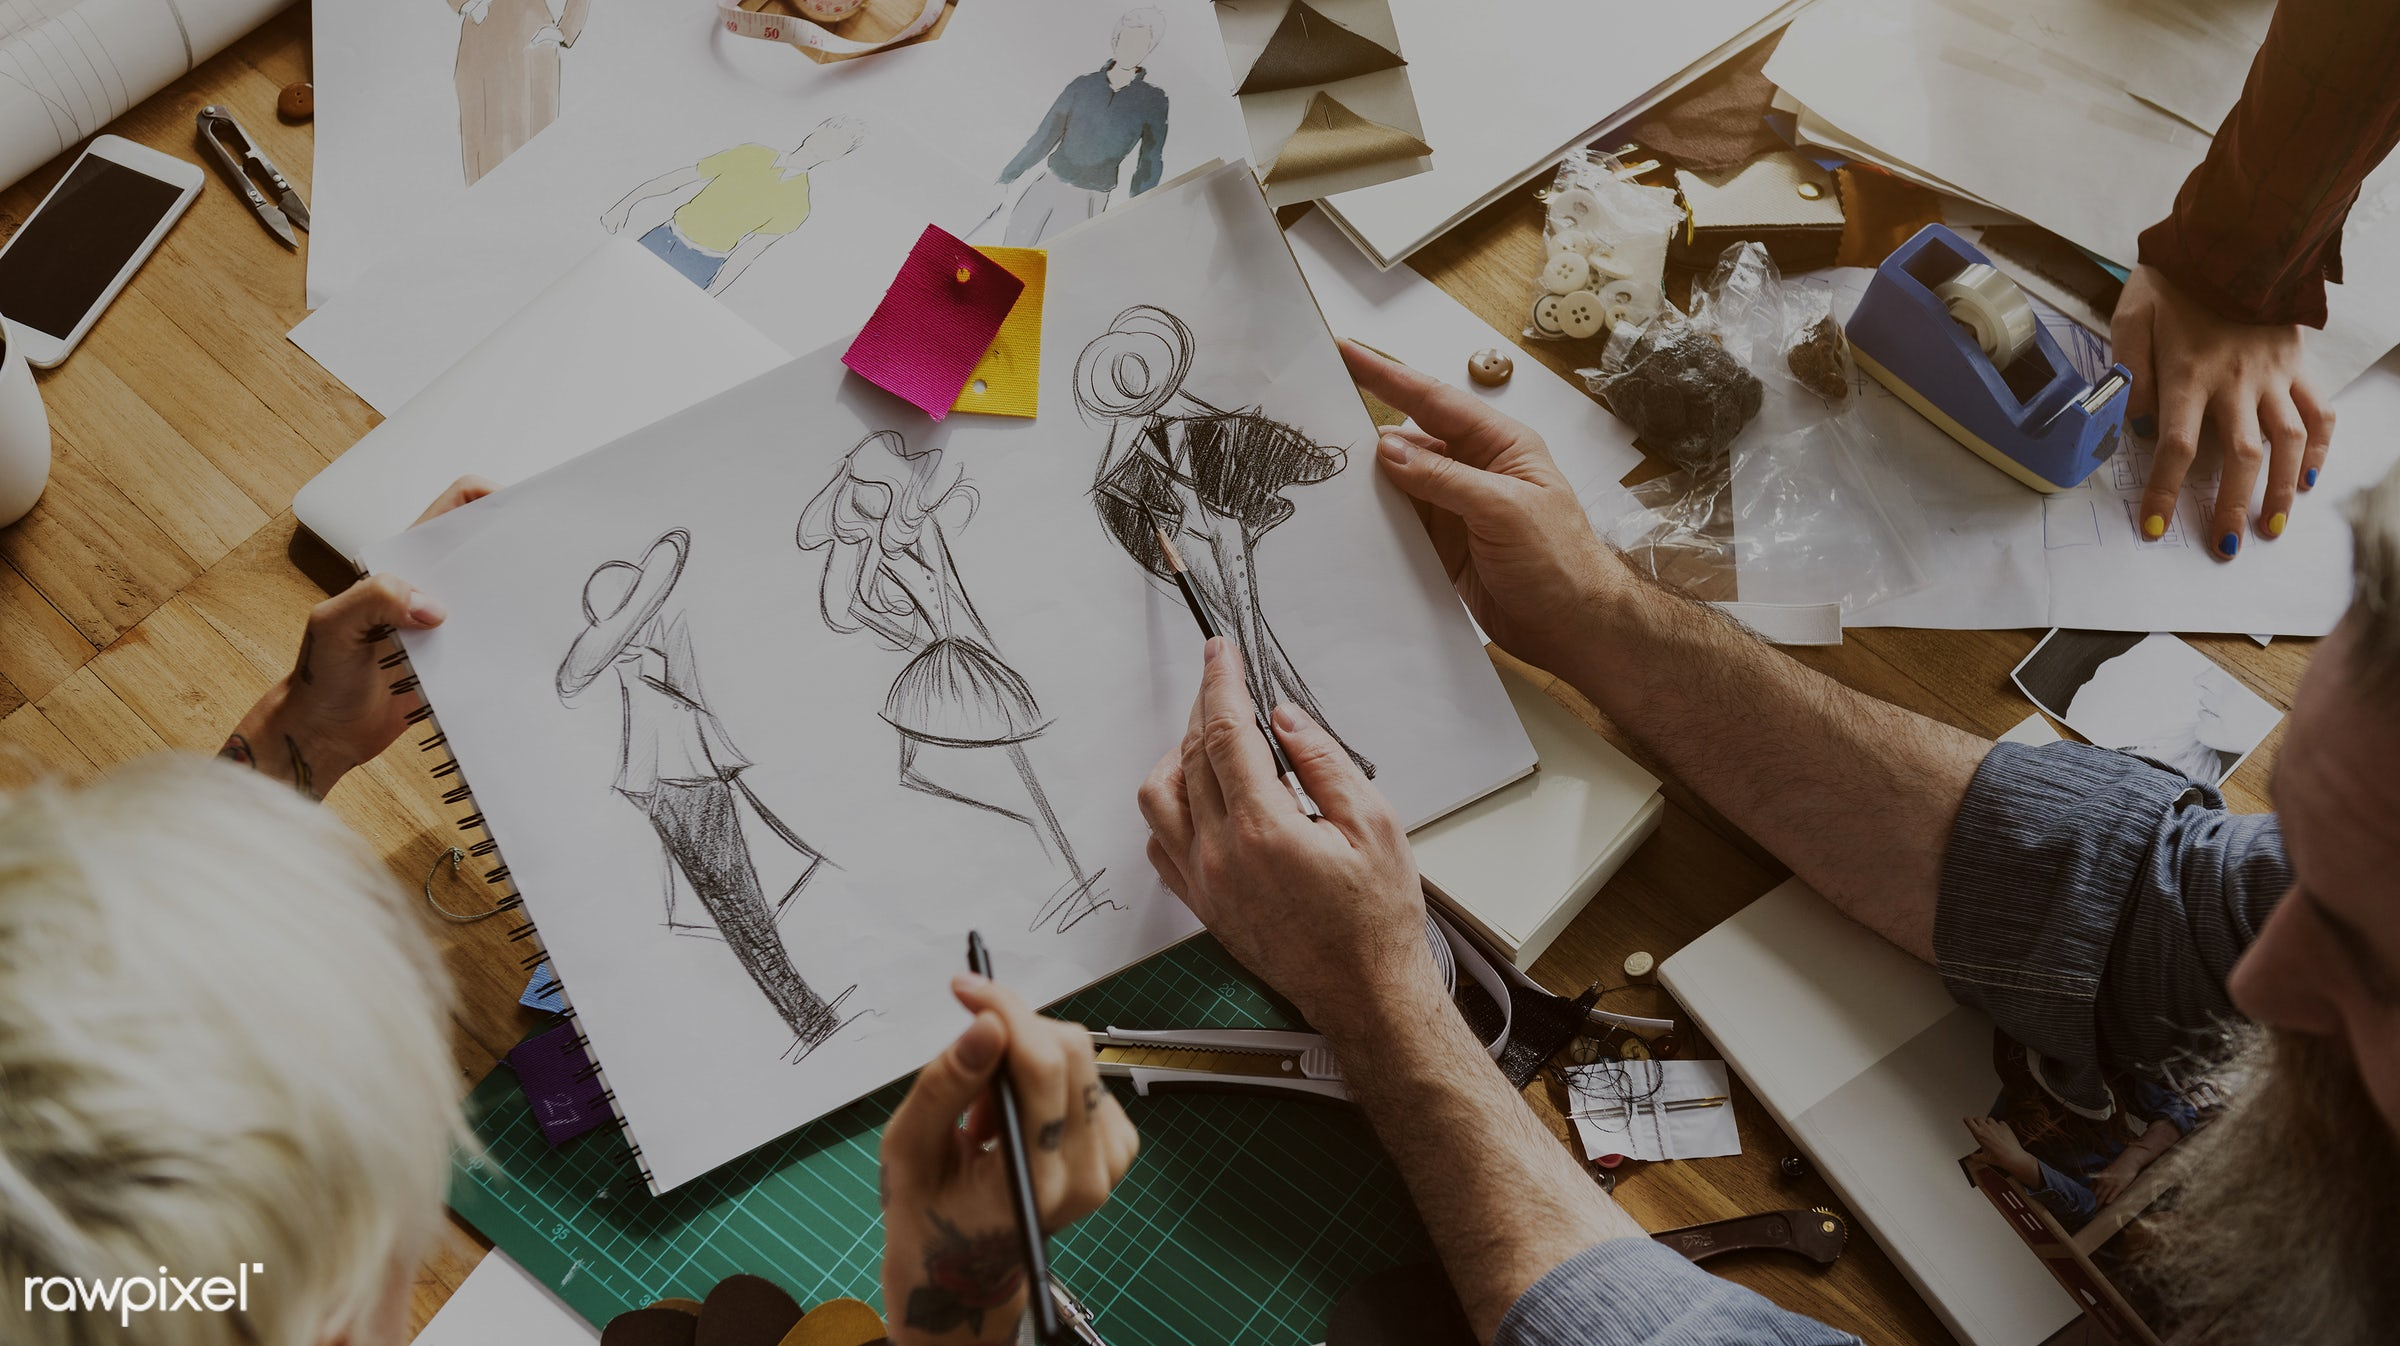 fashion, discussion, arts, paper, trendy, imagination, creativity, drawing, hand, teamwork, sharing, inspiration, style,...